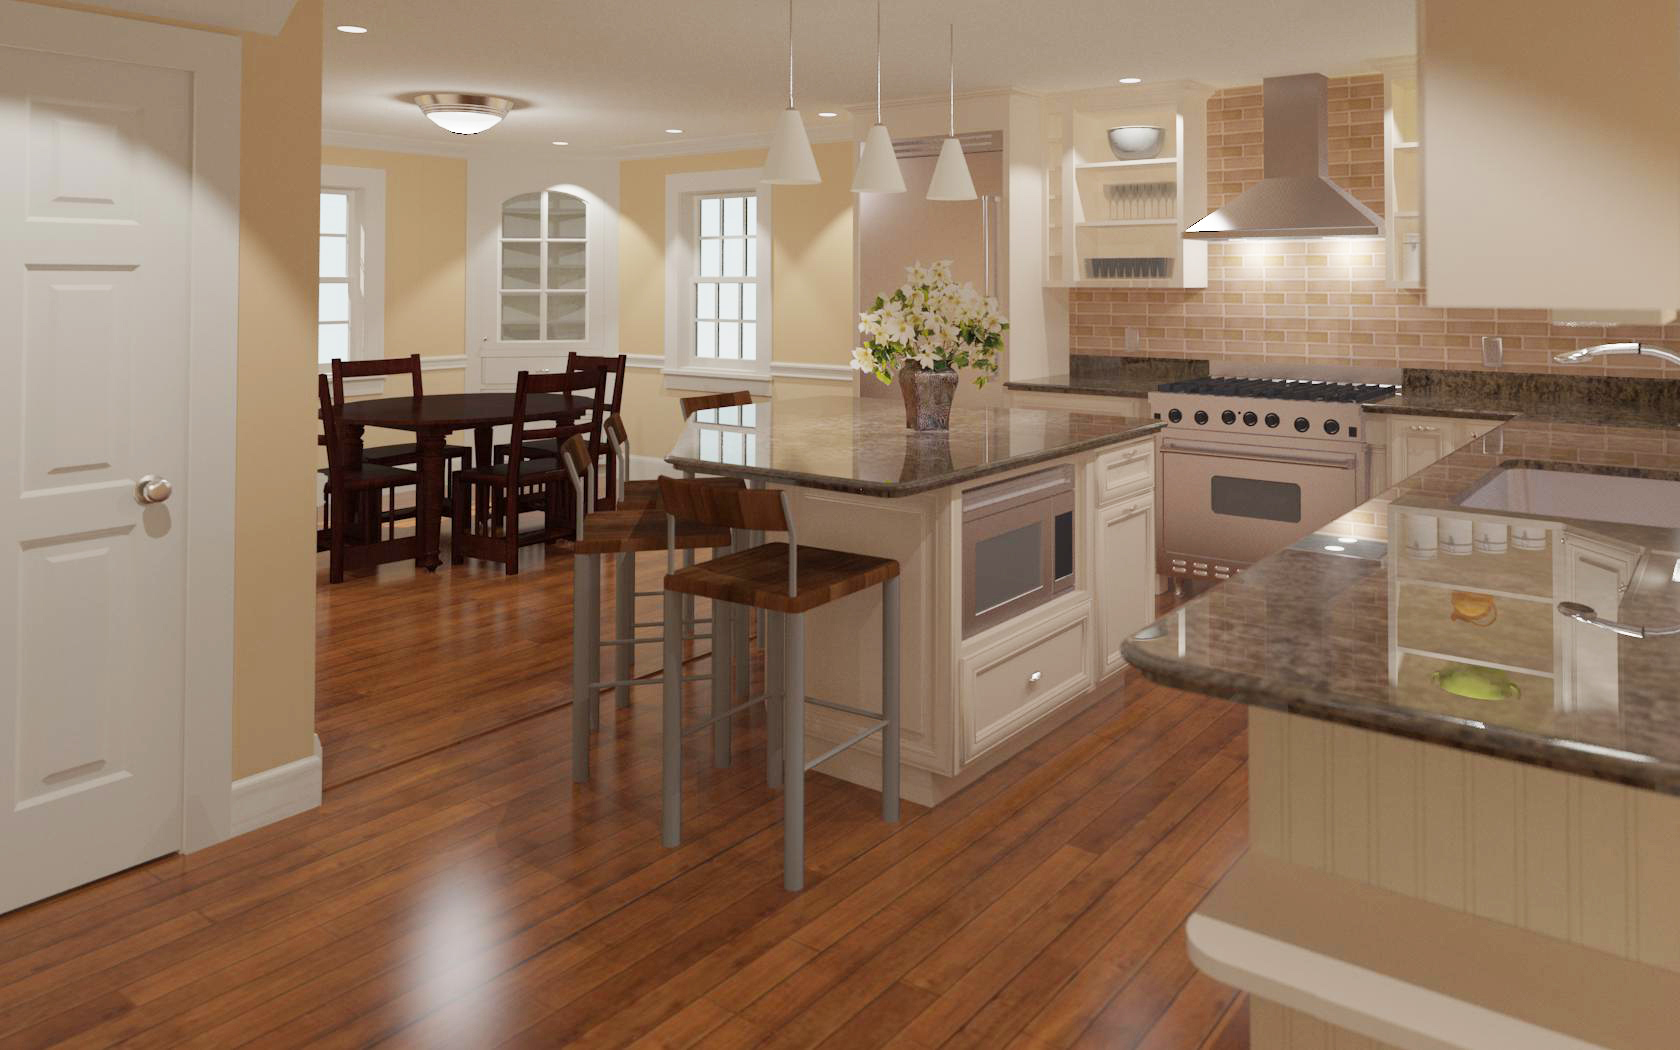 Traditional Kitchen 3D Renderinghomedesignconsulting.com ...